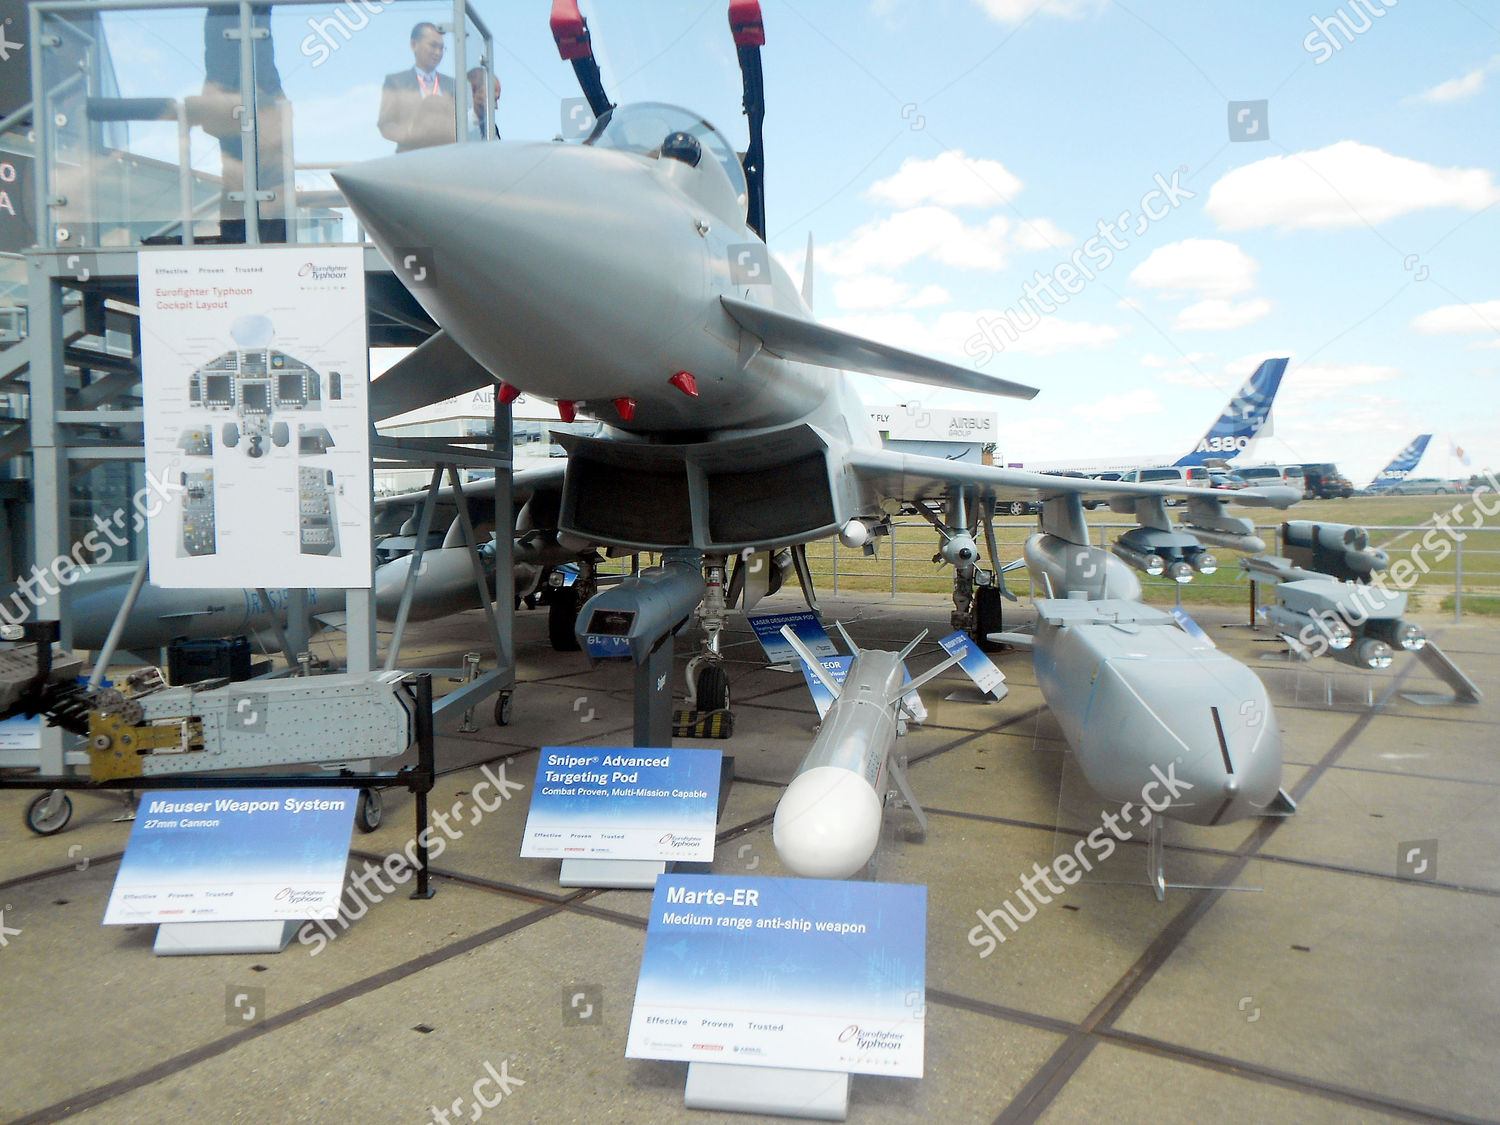 Eurofighter Typhoon missile weapon systems left right